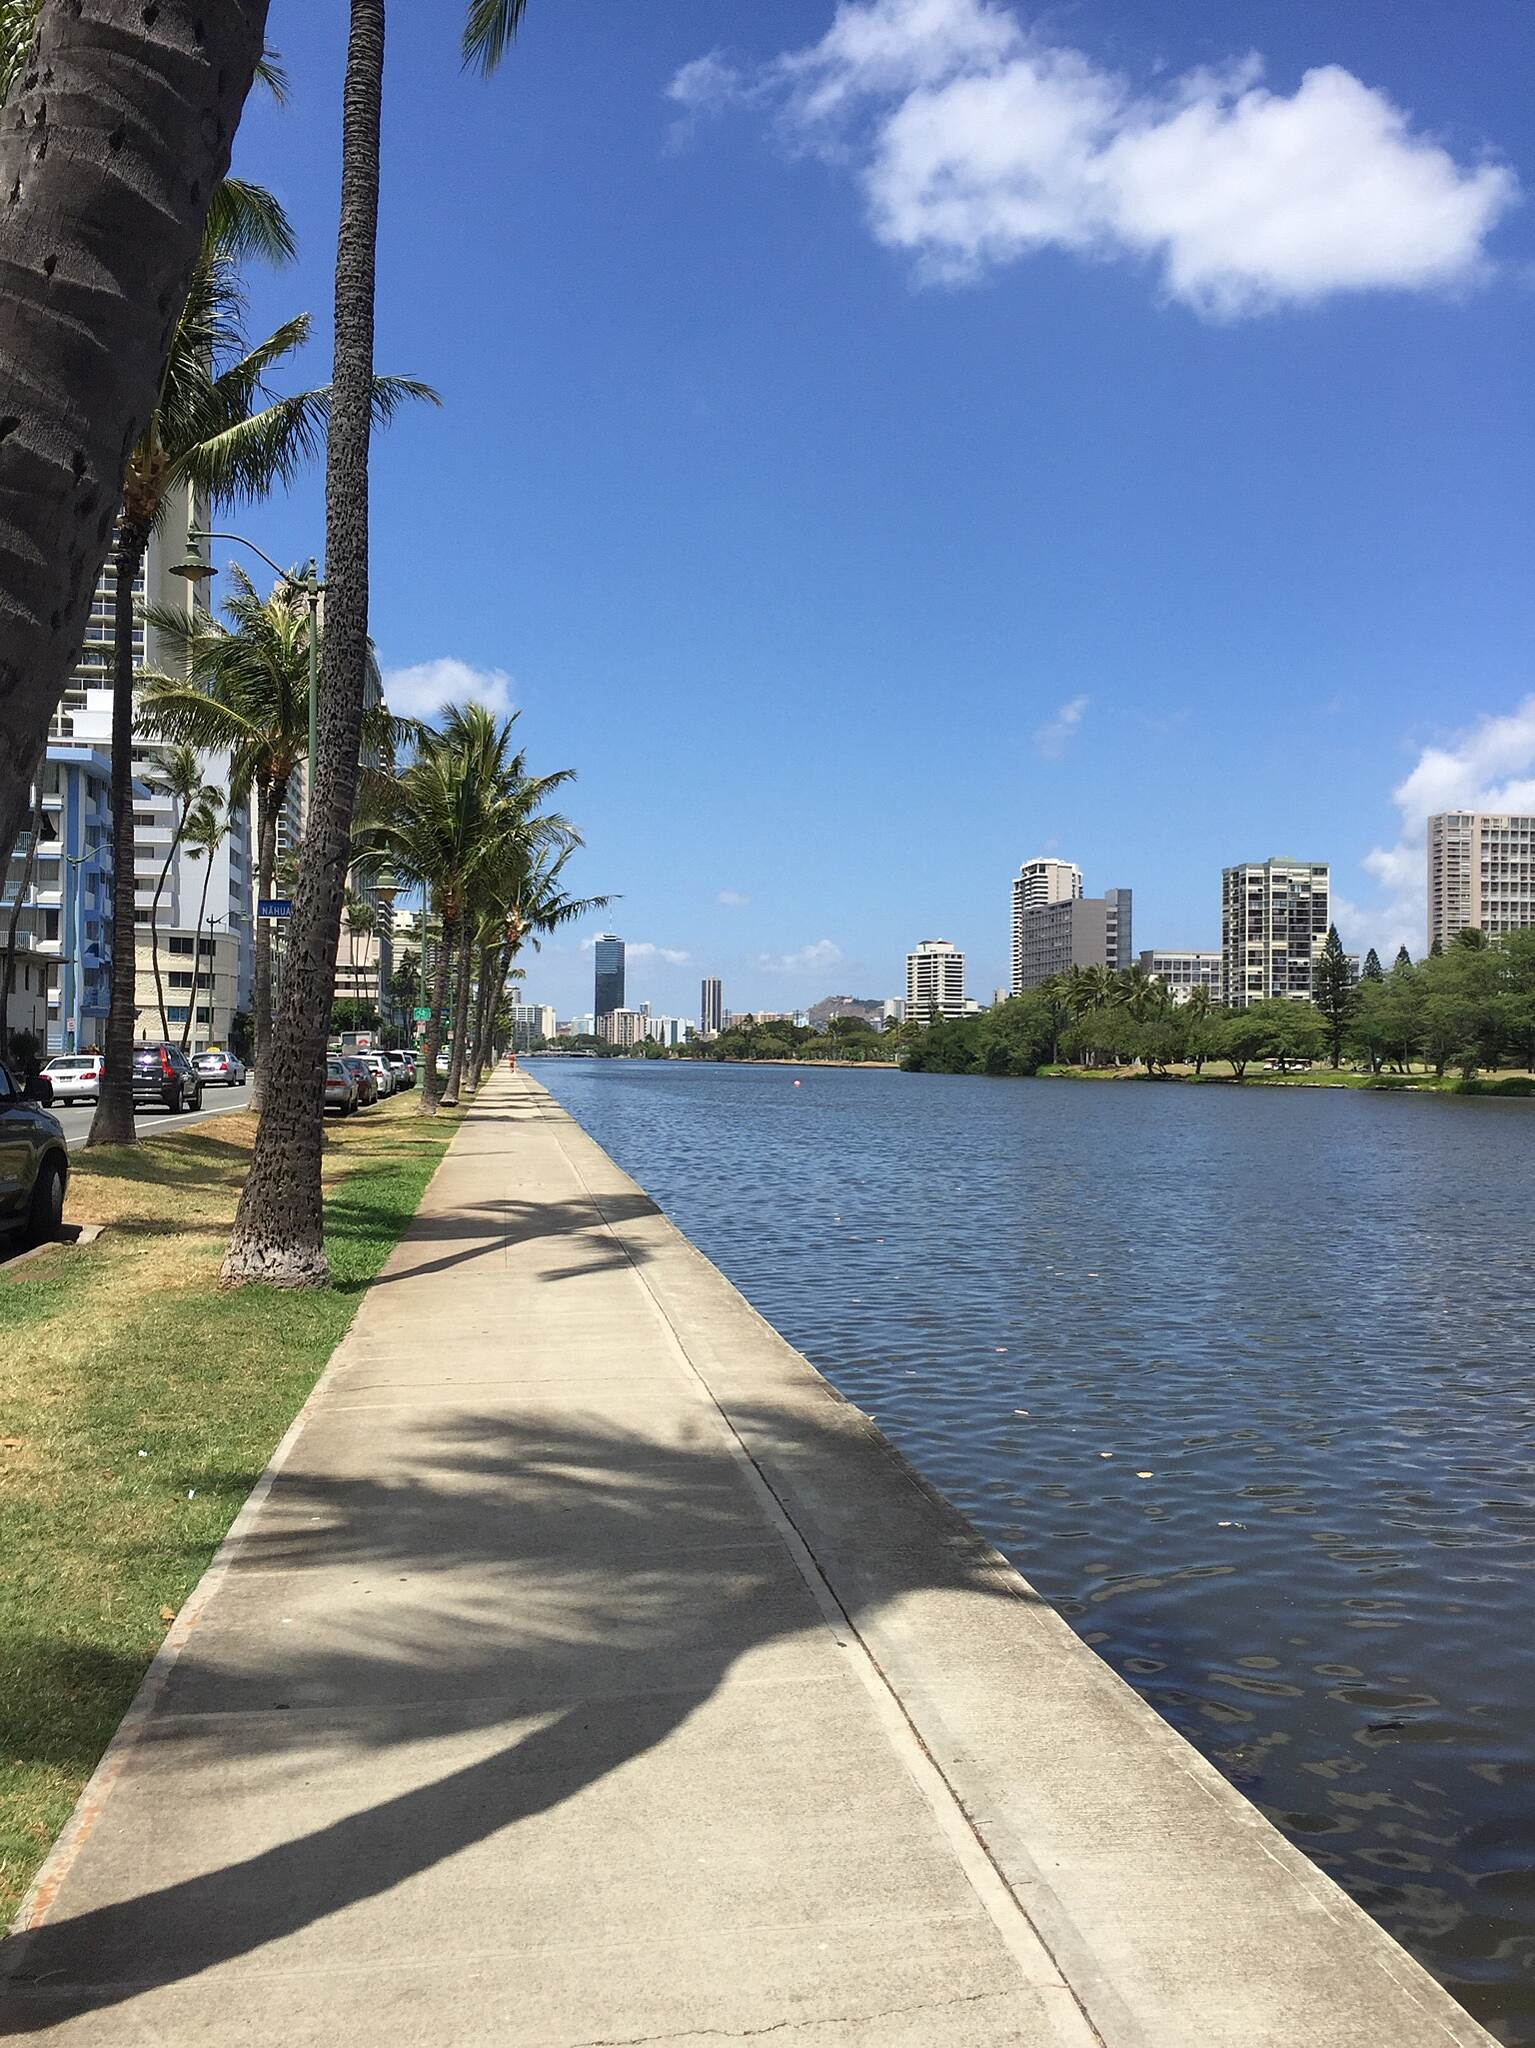 Ala Wai Canal Promenade Ala Wai Canal Promenade Photo Courtesy of Lyla Dang